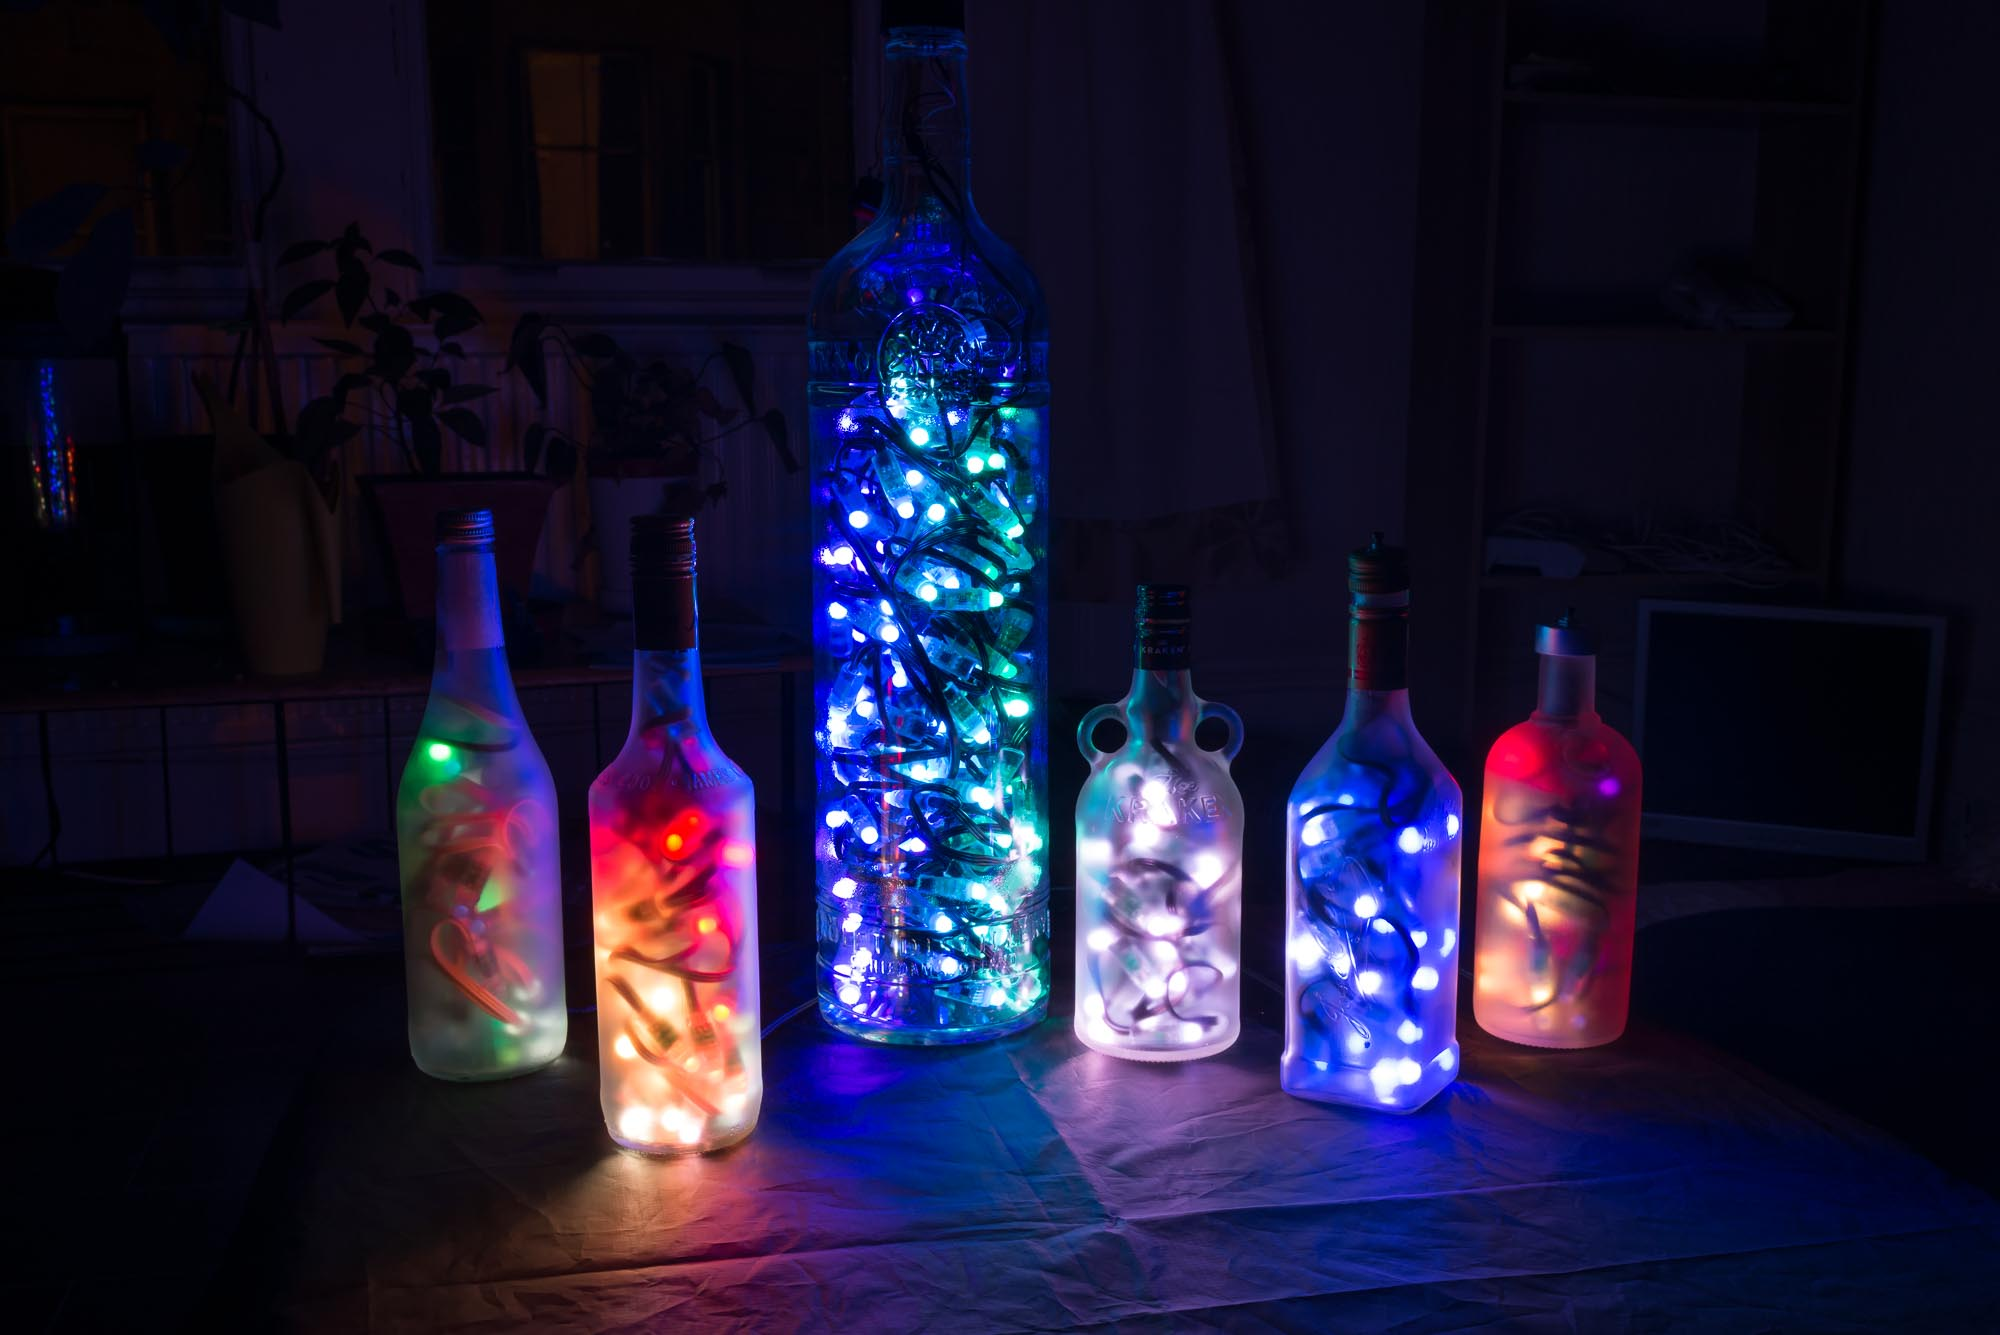 Audio Reactive Bottle Lights - Hardware, Software and 3D mapping by Devicer